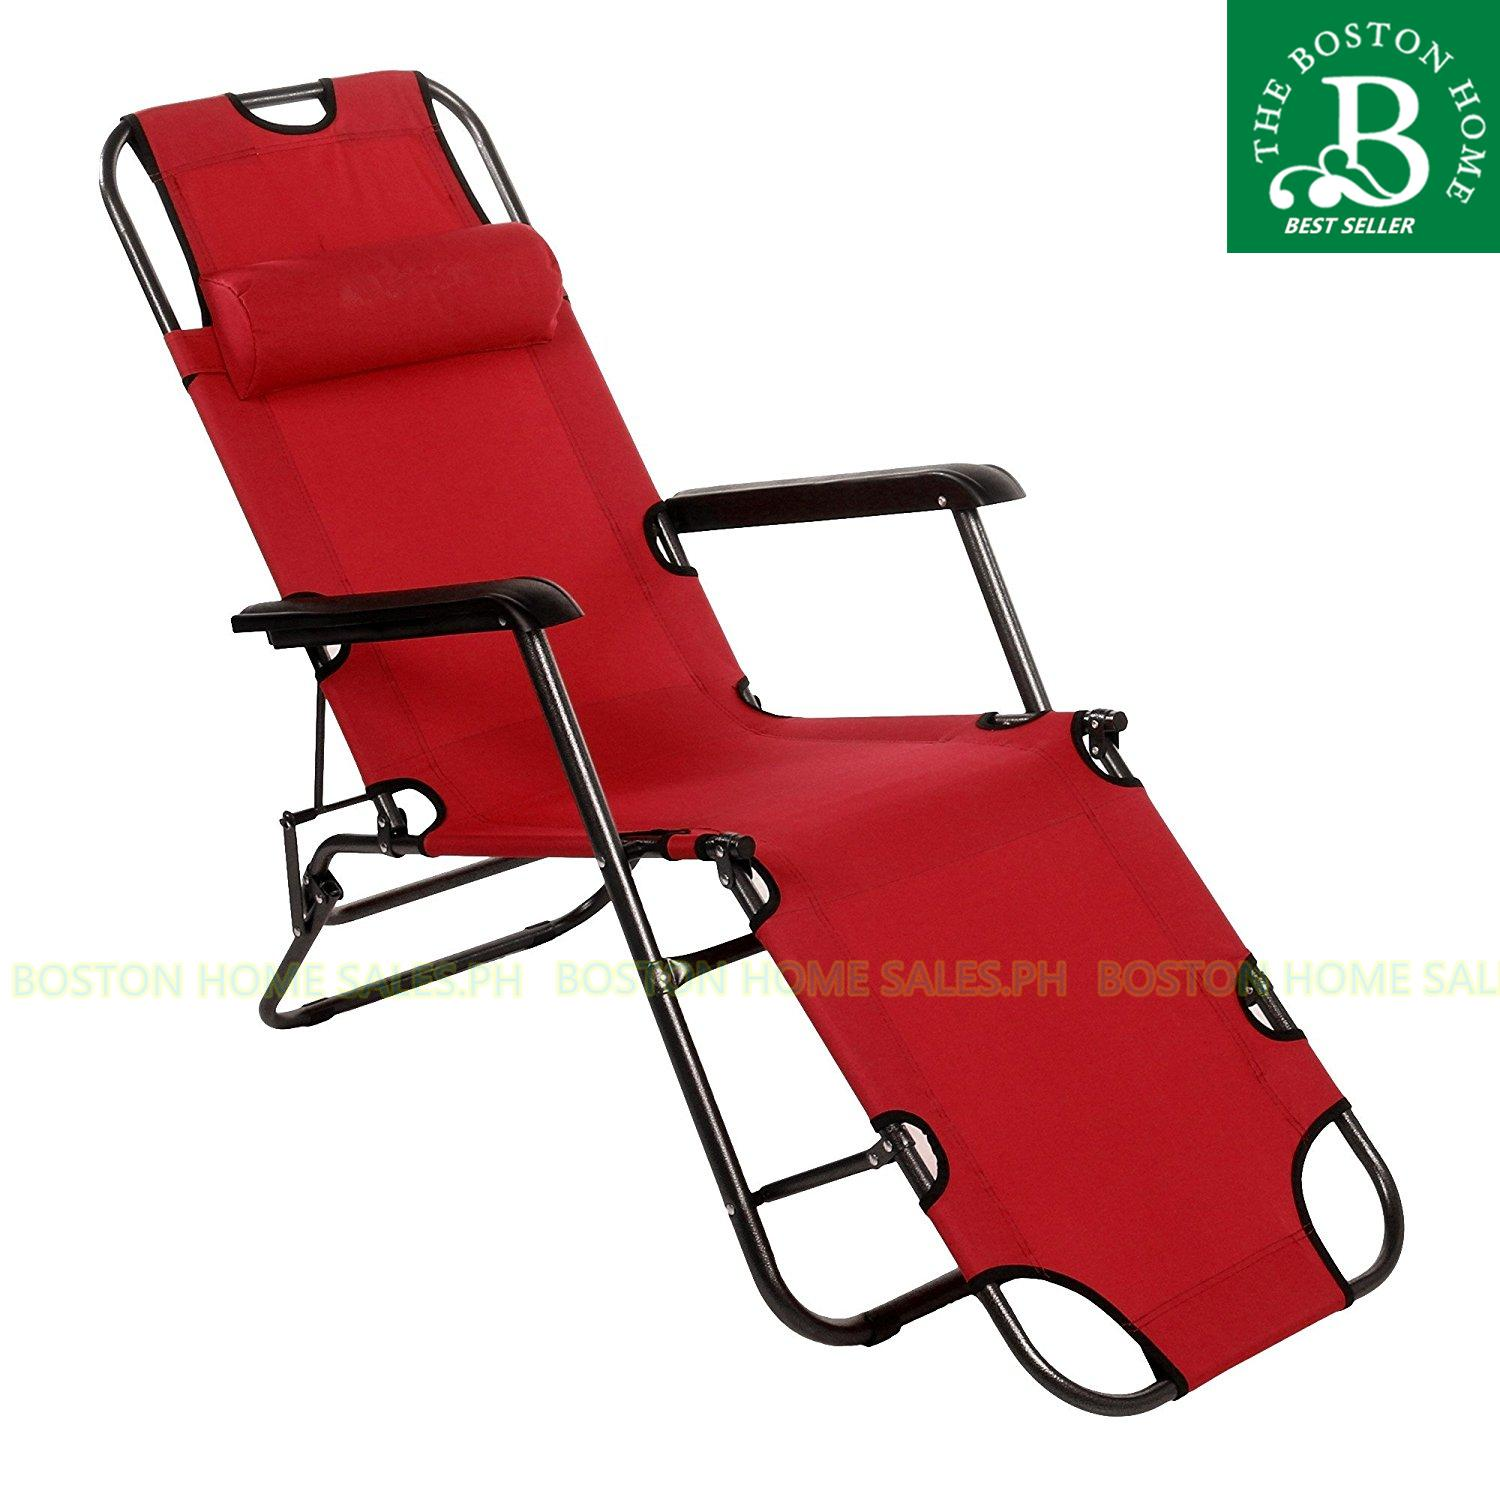 Folding Sleeping Chair Boston Home Outdoor Indoor Portable 2in1 Folding Chair Recliner Sleeping Loung Lounge Chair Reclining Chair Full Sleeper Chair With Headrest